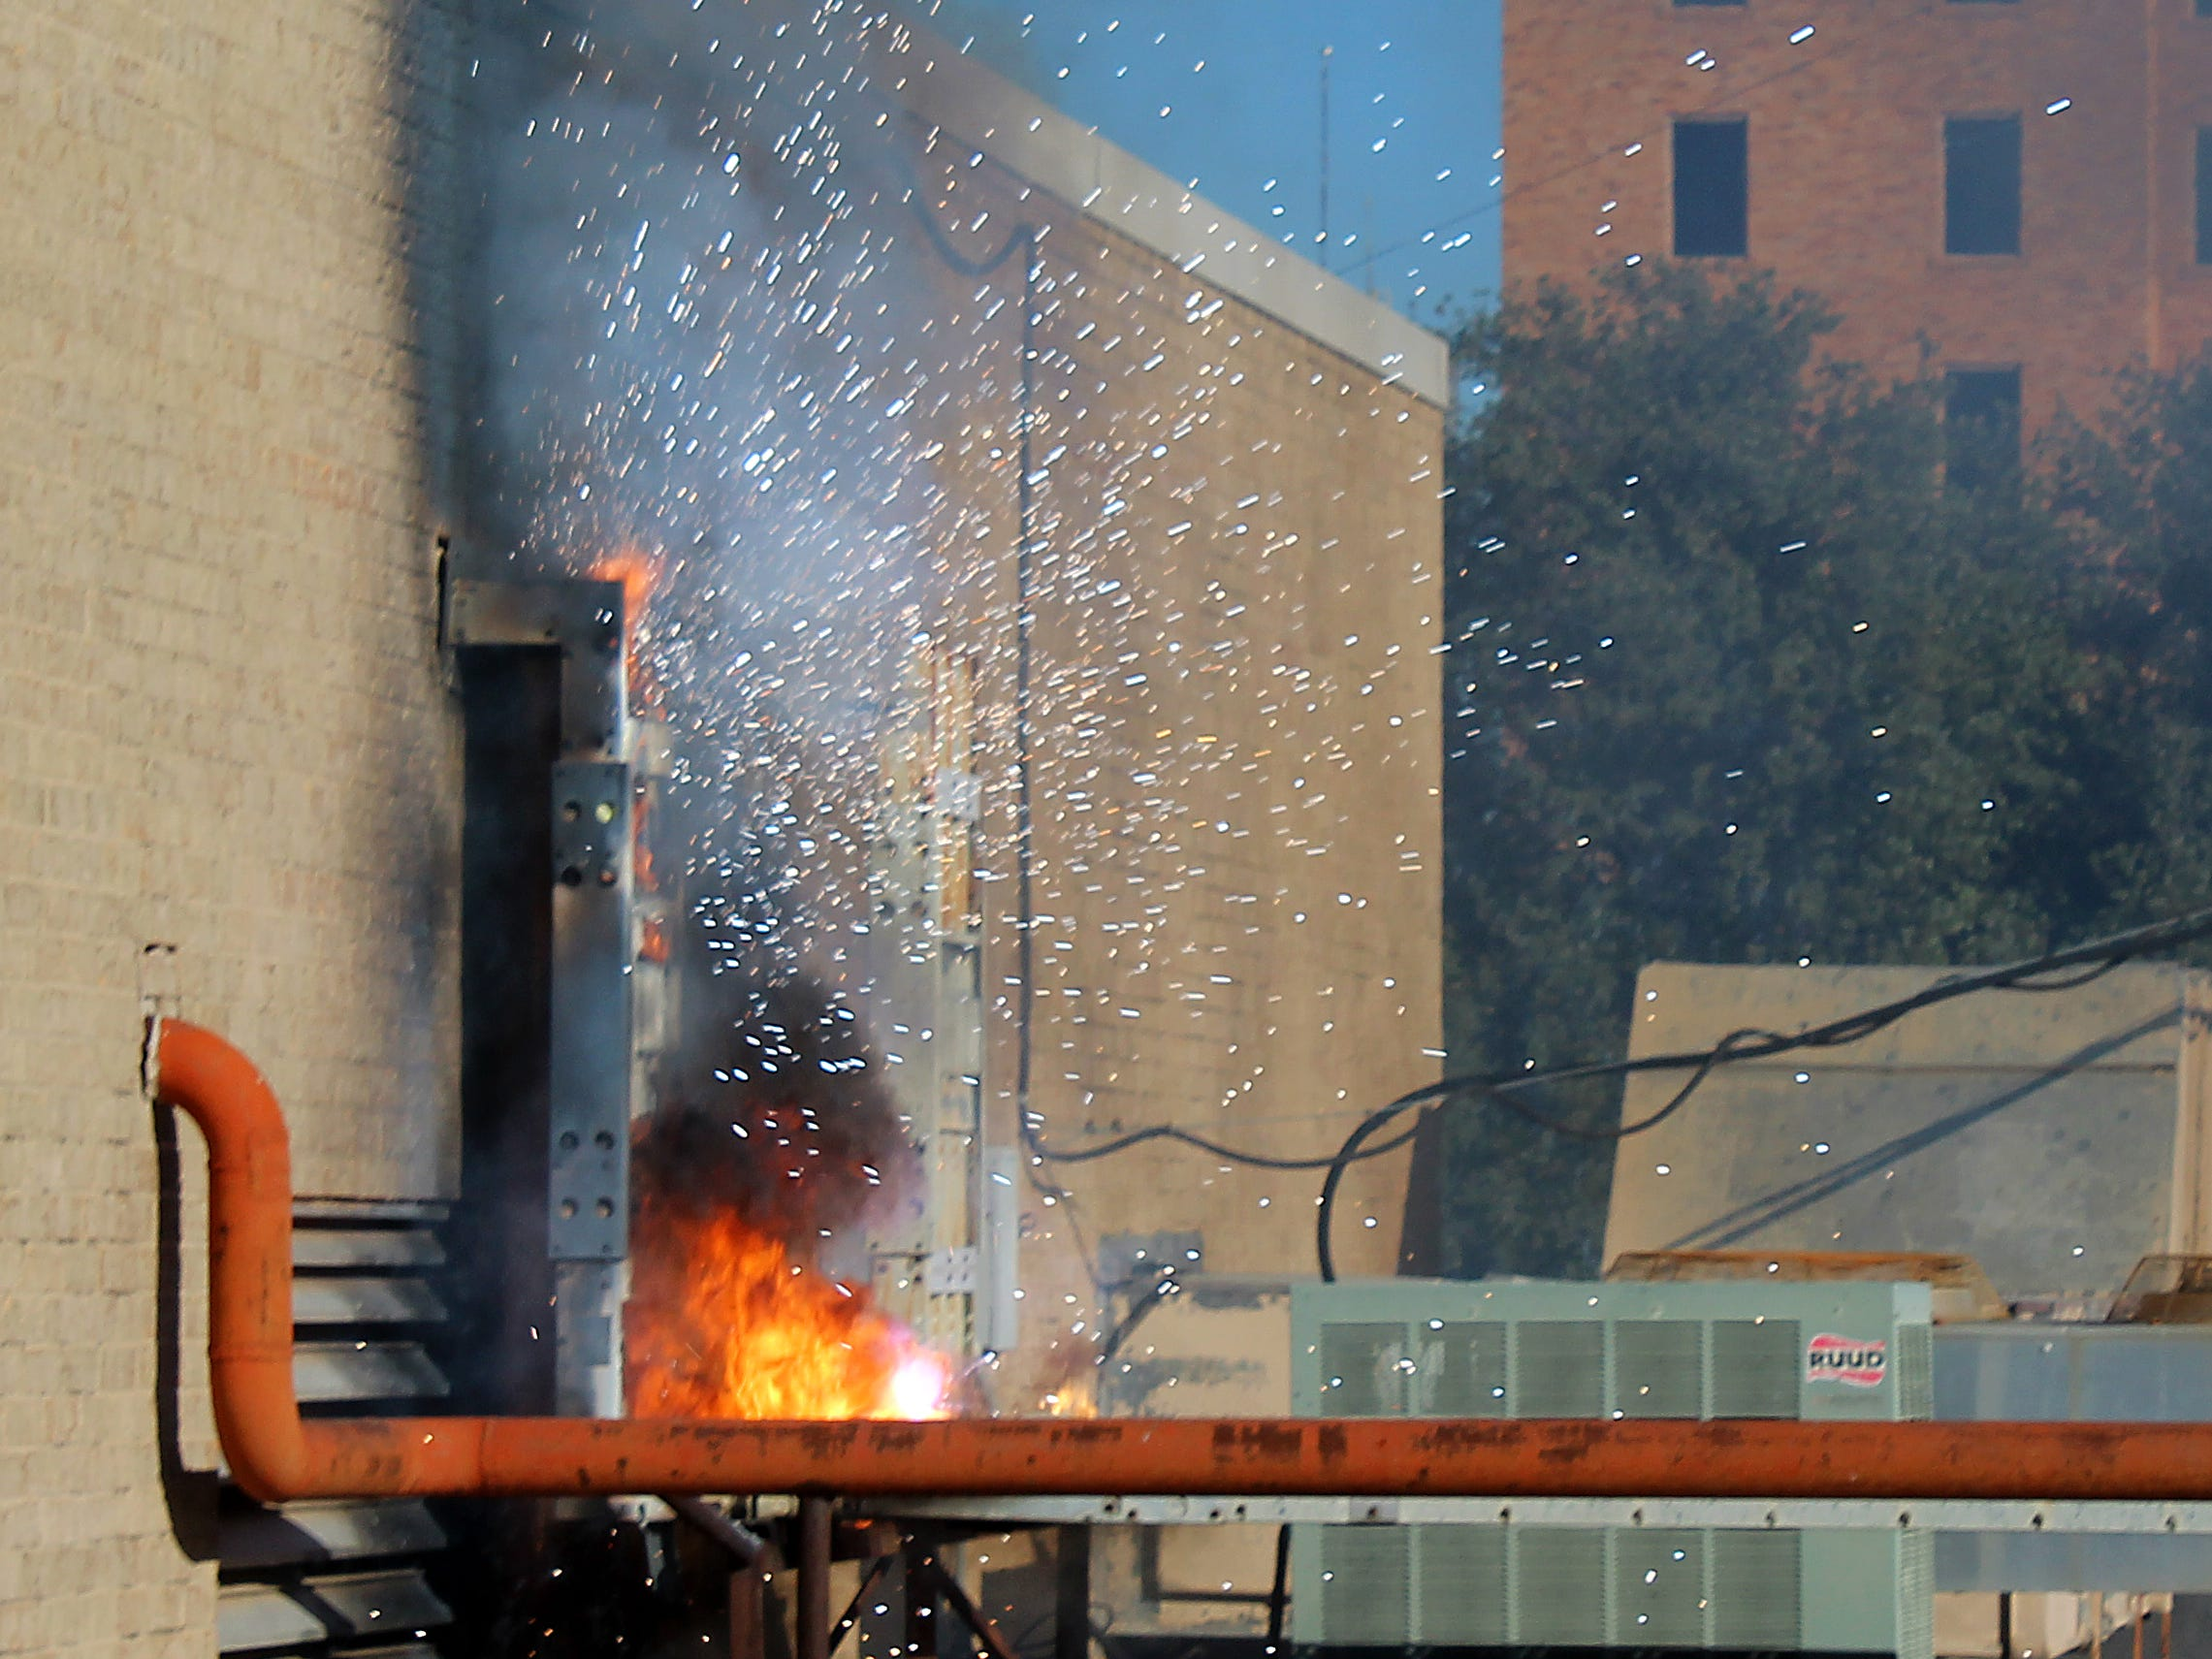 Sparks fly from the east side of the Abilene Reporter-News utility room, located on the roof, Thursday Nov. 15, 2018. The sparks developed into a two-alarm fire, forcing the evacuation of the newspaper.